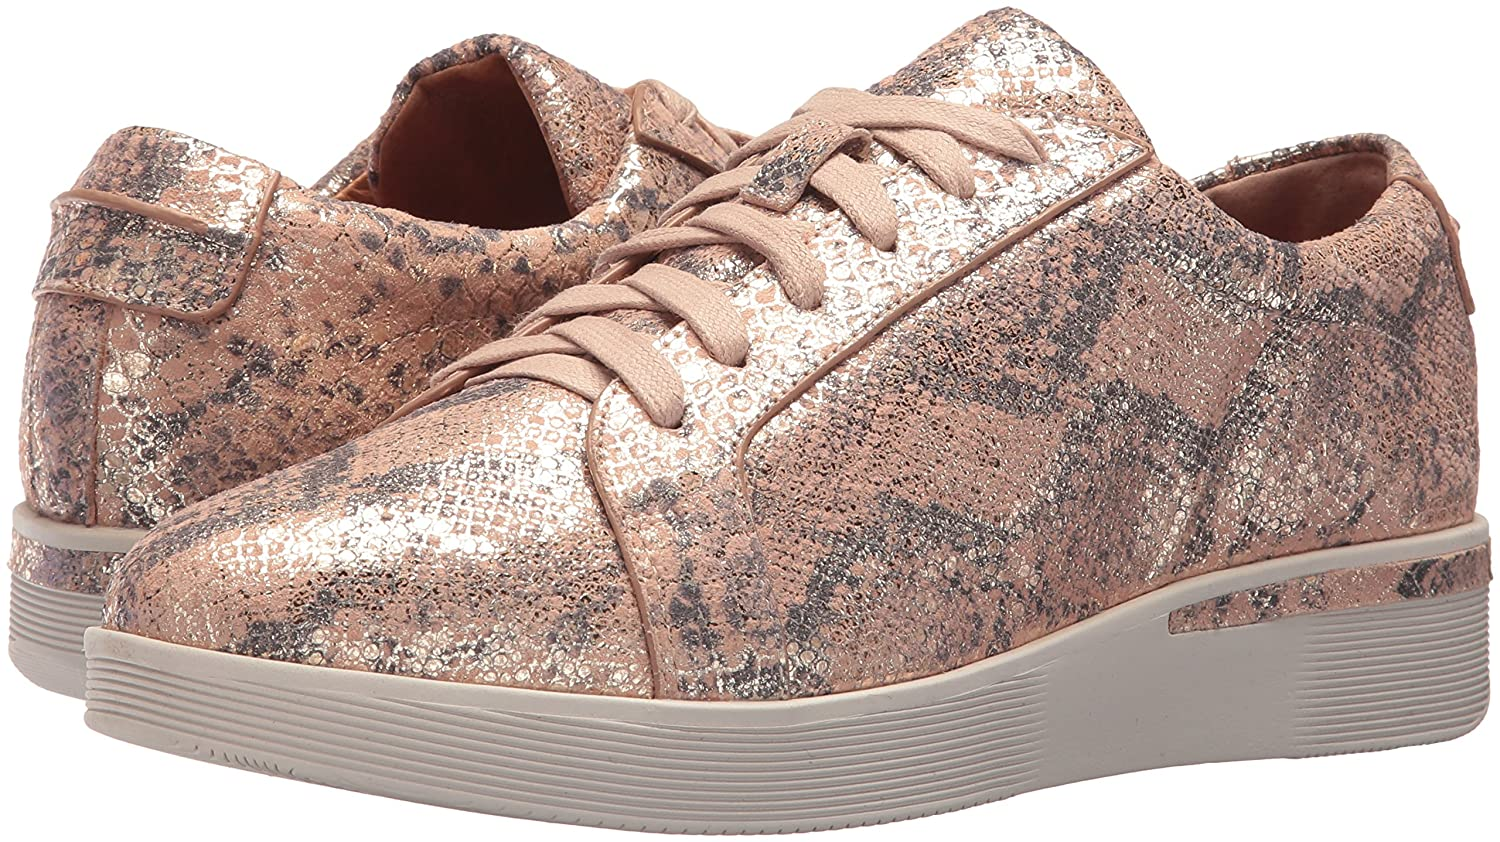 Gentle Souls by Kenneth Cole Women's Sneaker Haddie Low Profile Fashion Sneaker Women's Embossed Fashion Sneaker B077NV516T 8 M US|Rose 626eac